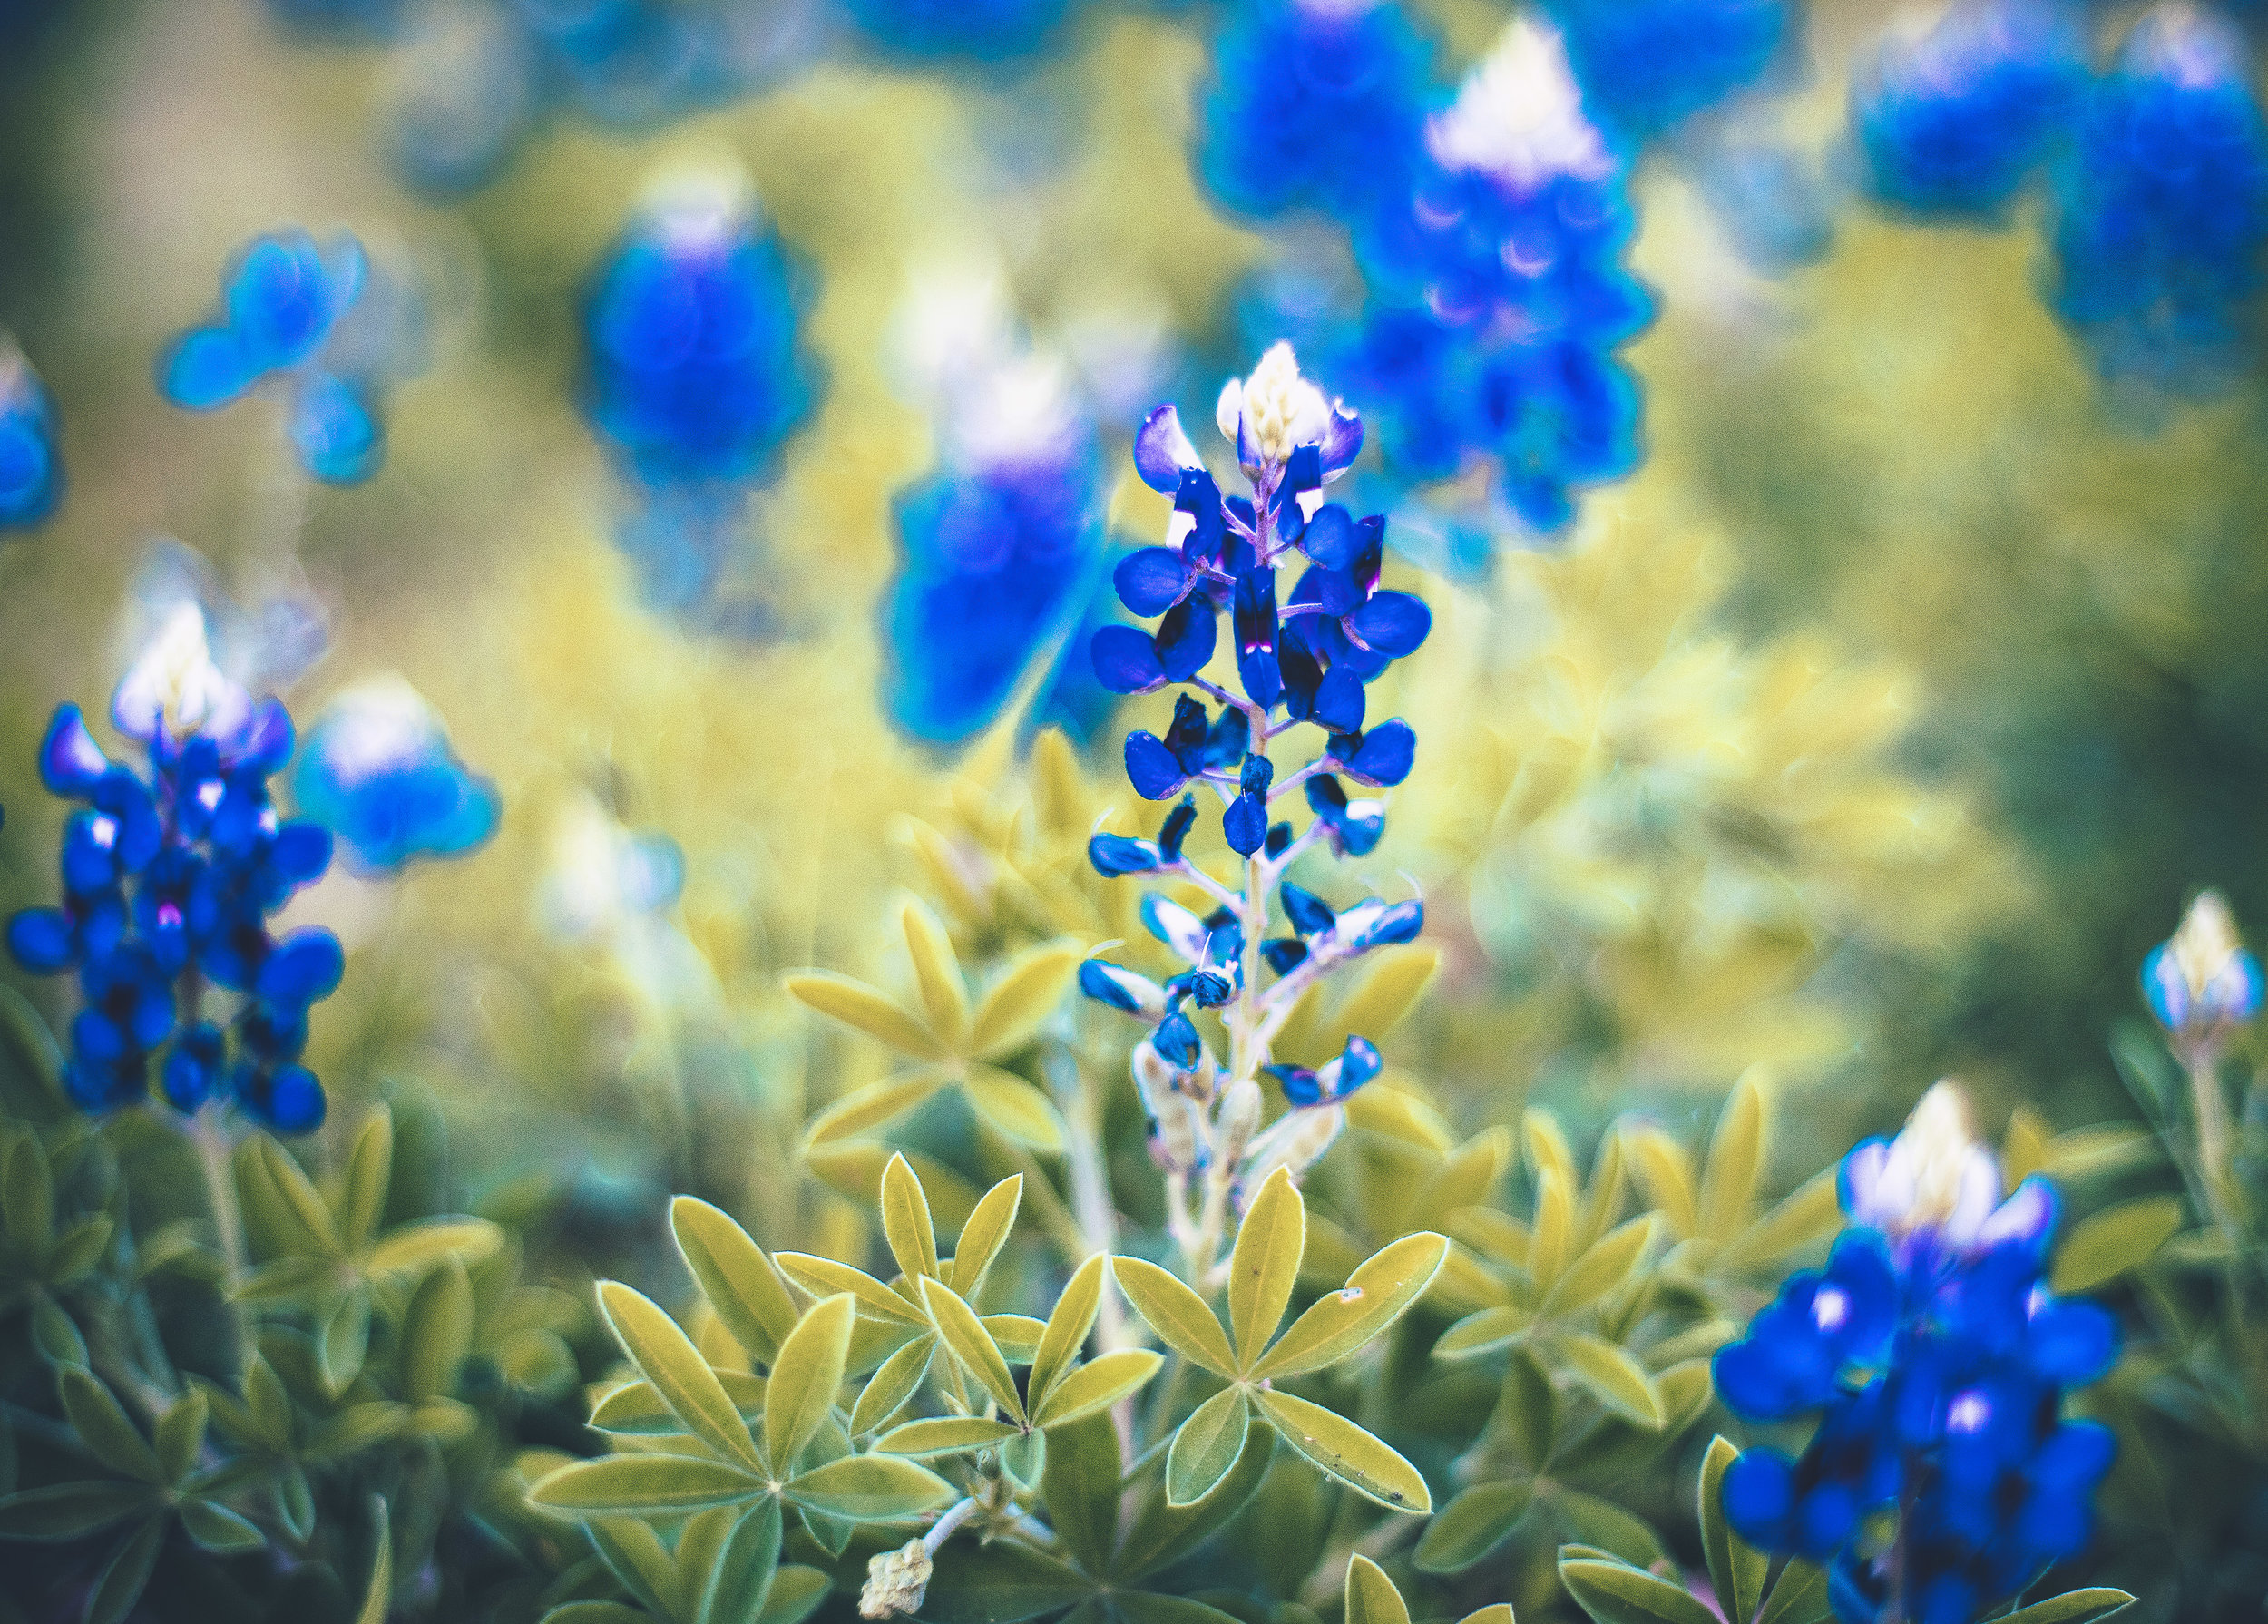 Lady Bird Johnson encouraged the planting of native plants along Texas highways after she left the White House.